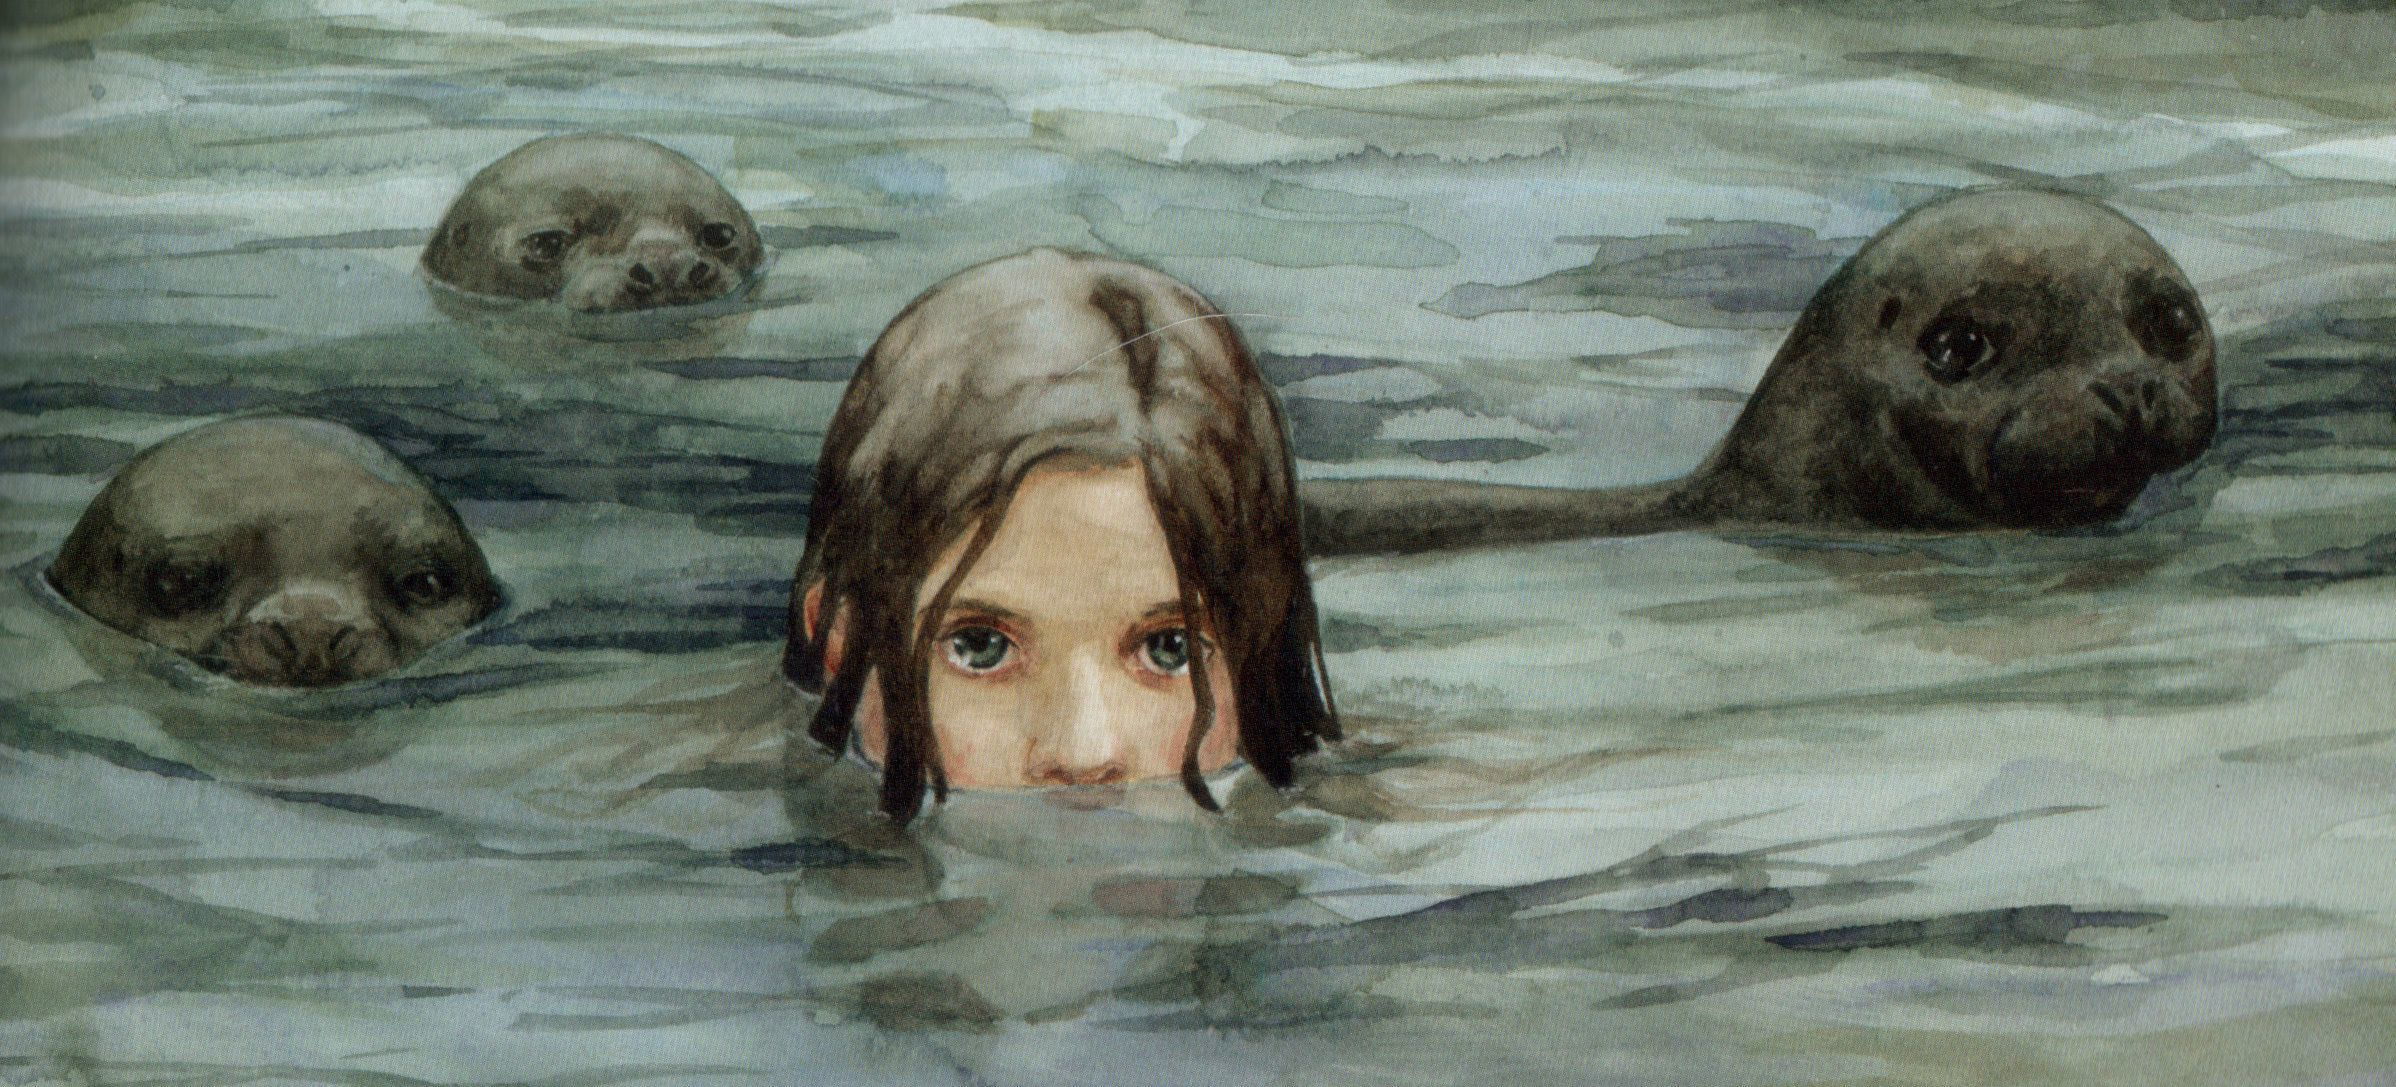 The selkie, a mythical creature which resembles a seal in the sea but assumes human form on land